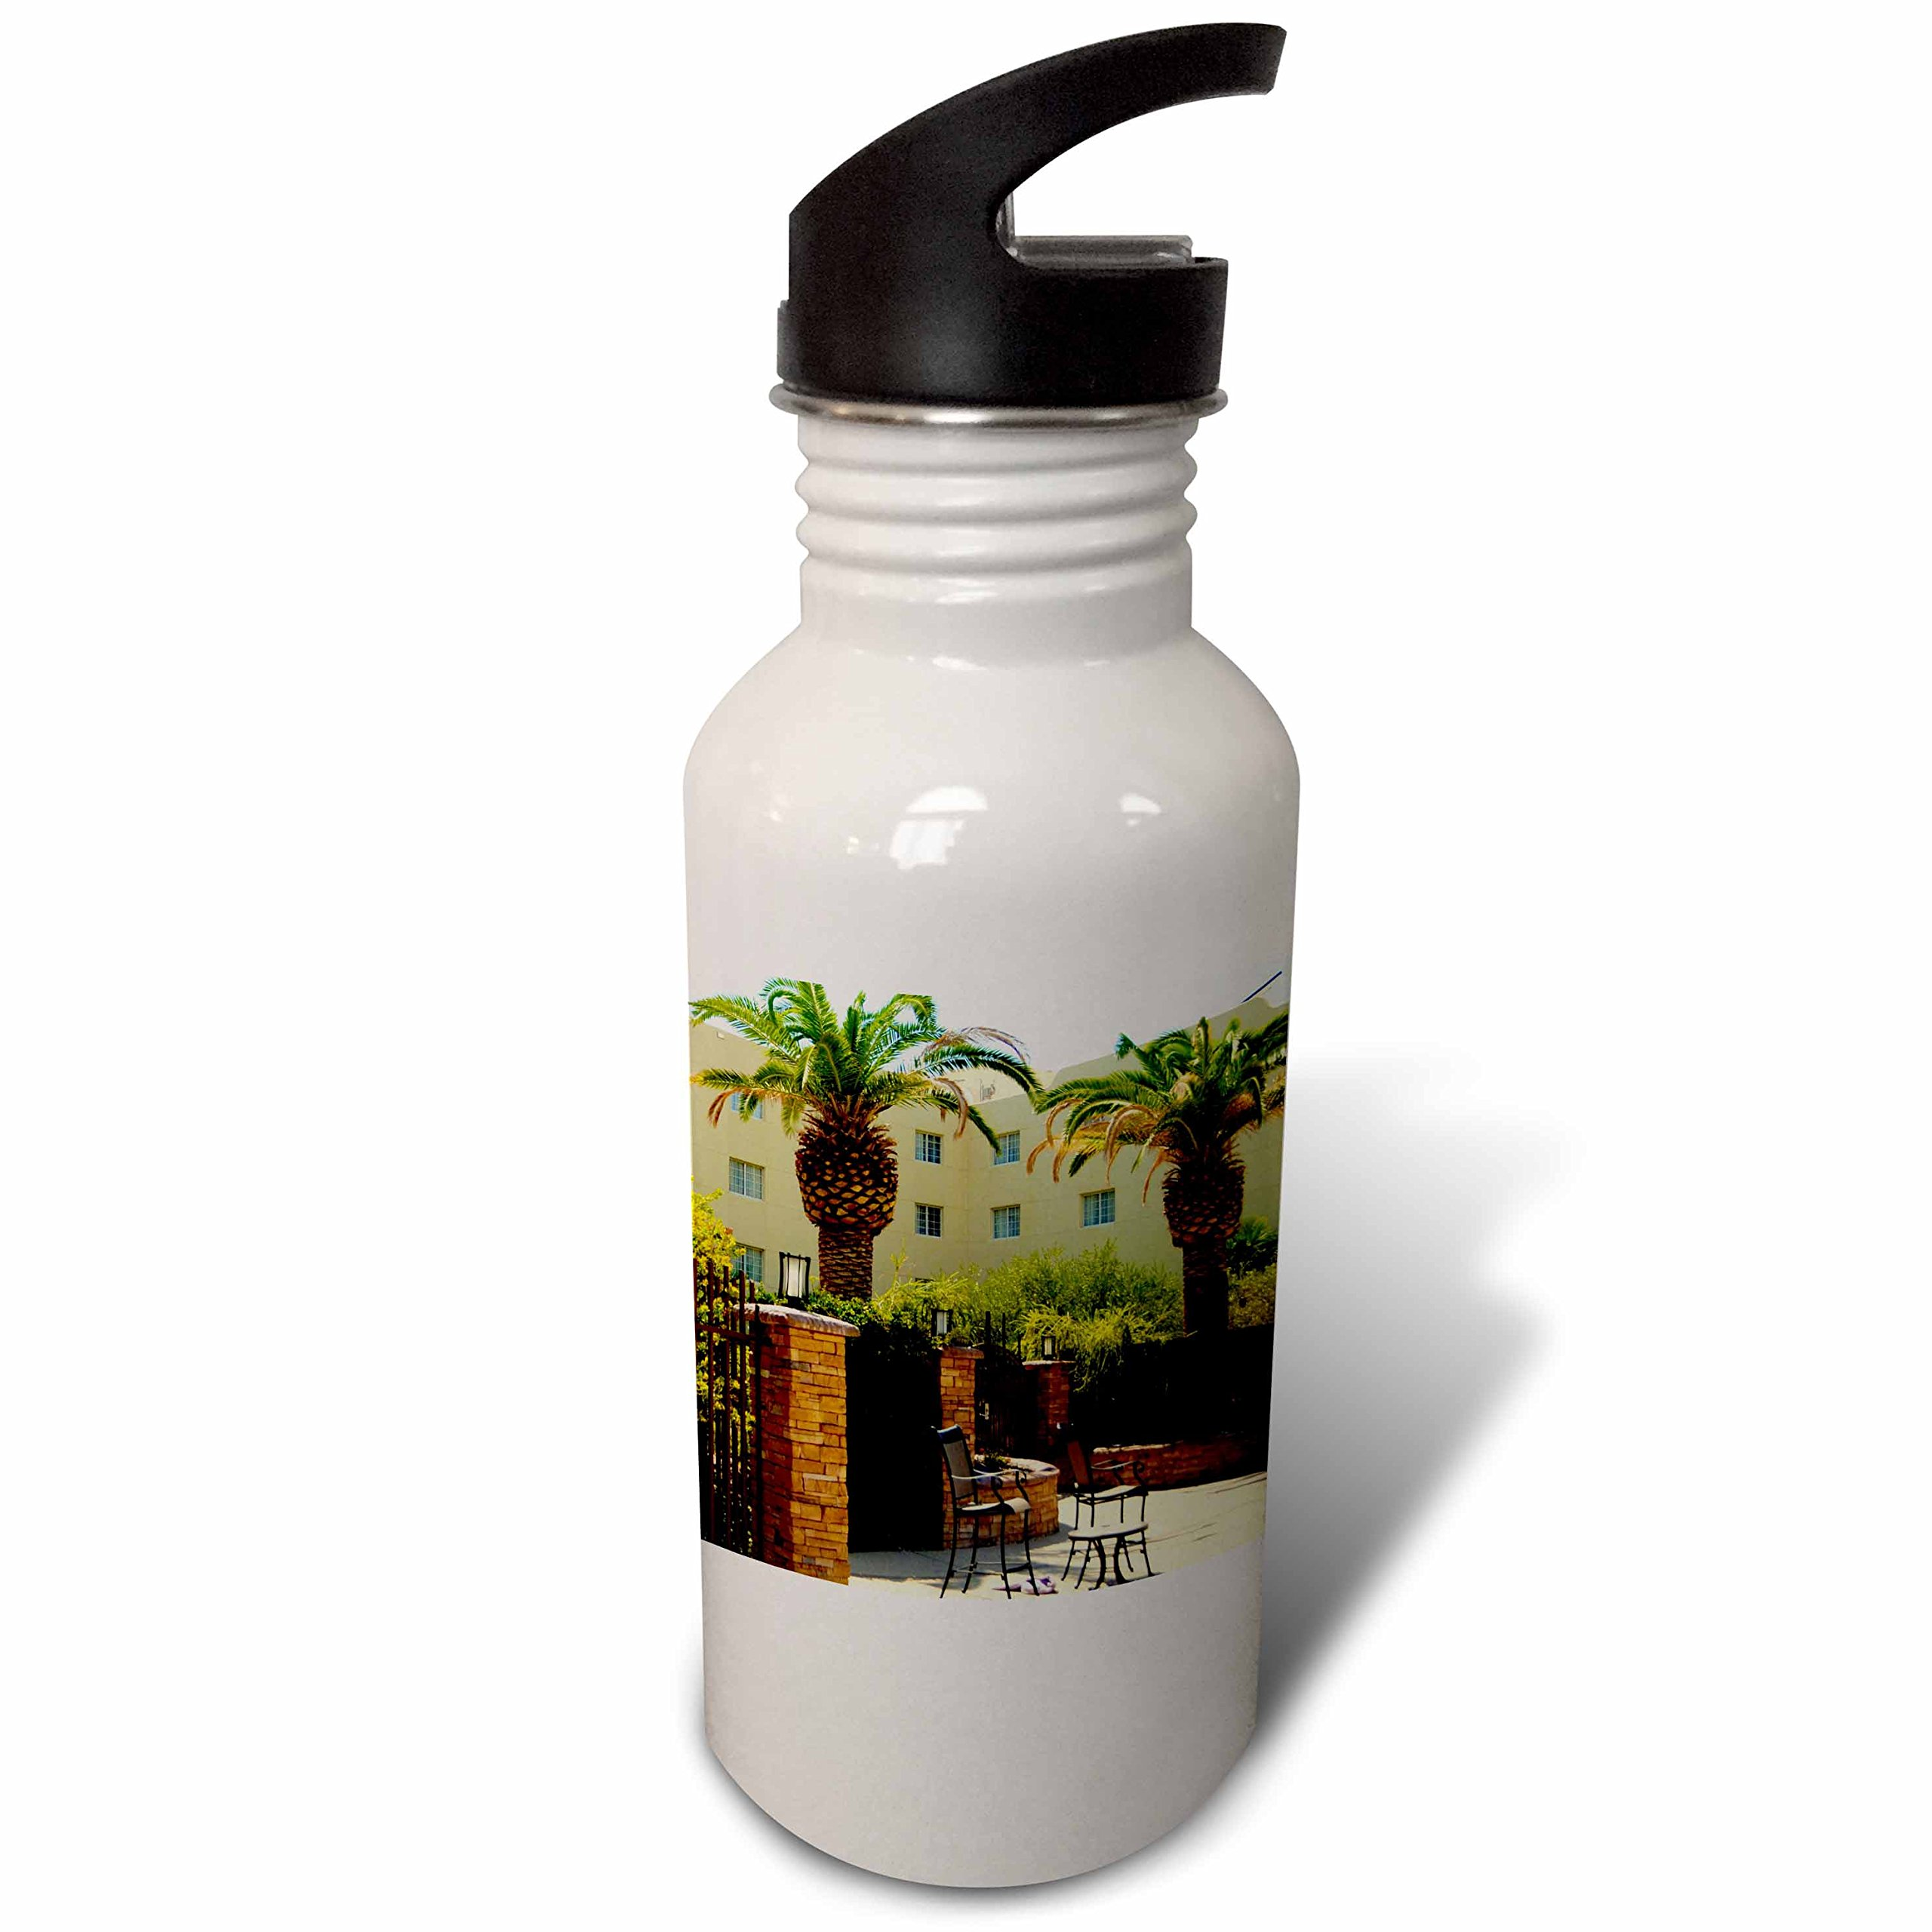 3dRose Jos Fauxtographee- Palms at Hotel - A hotel in Mesquite Nevada with palm trees and chairs - Flip Straw 21oz Water Bottle (wb_273463_2)